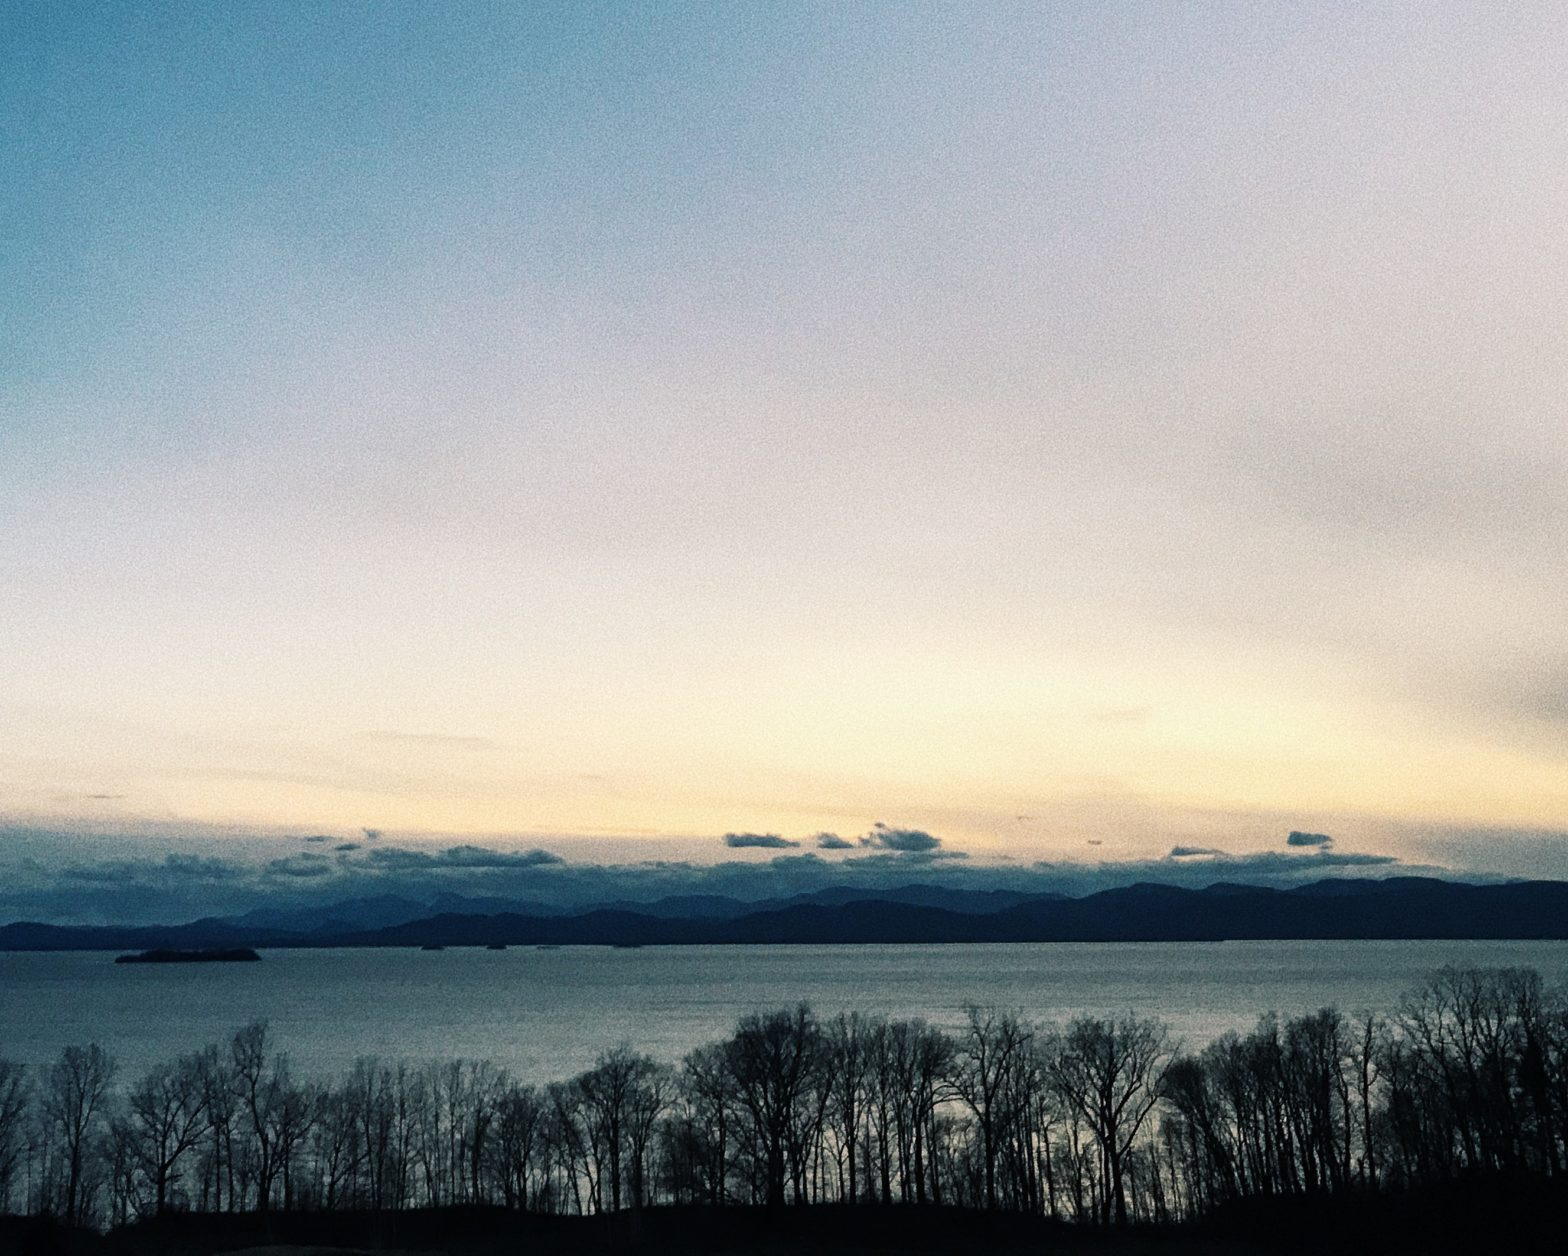 An image of Lake Champlain for the Covid-19 Syndromic Surveillance article about ER capacity in NYC